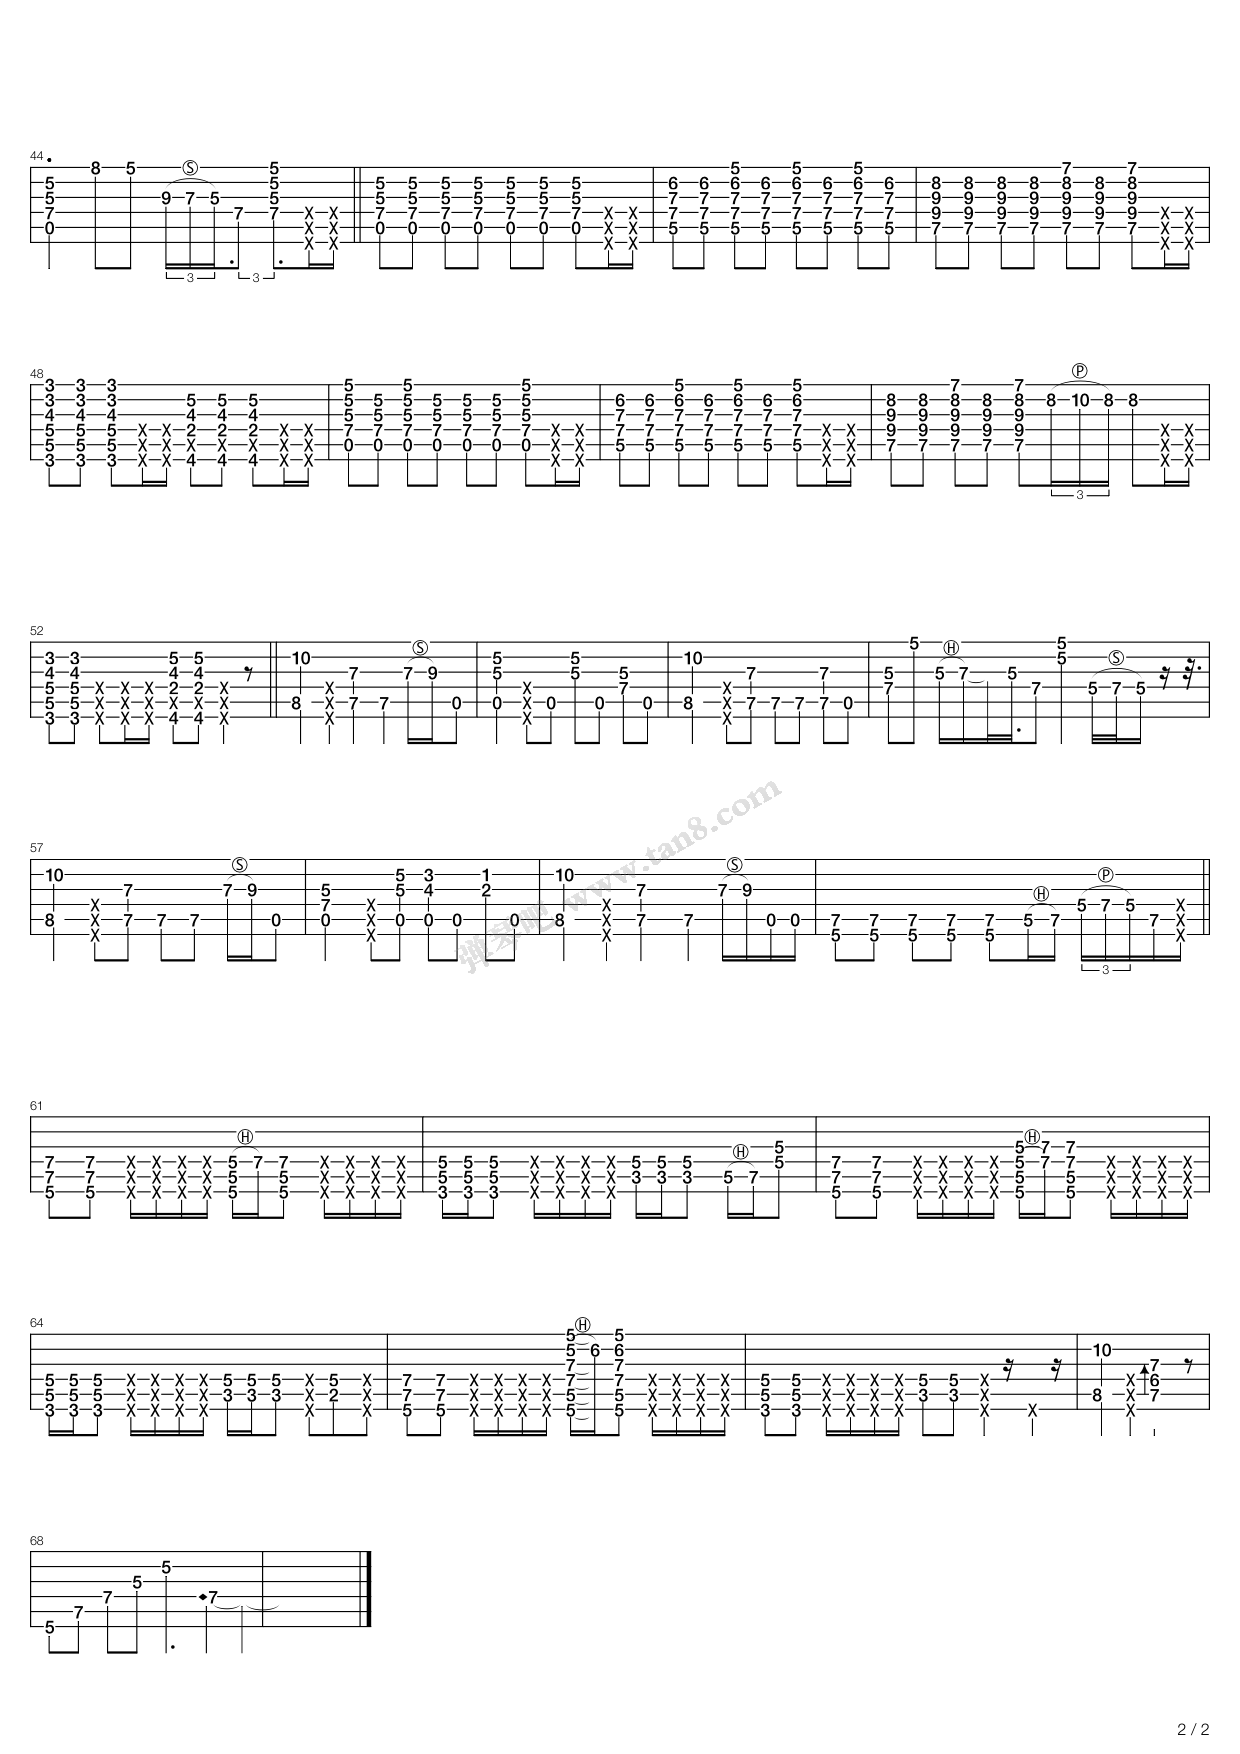 Boyfriend by Justin Bieber - Acoustic Version Guitar Tabs Chords Notes Sheet Music Free